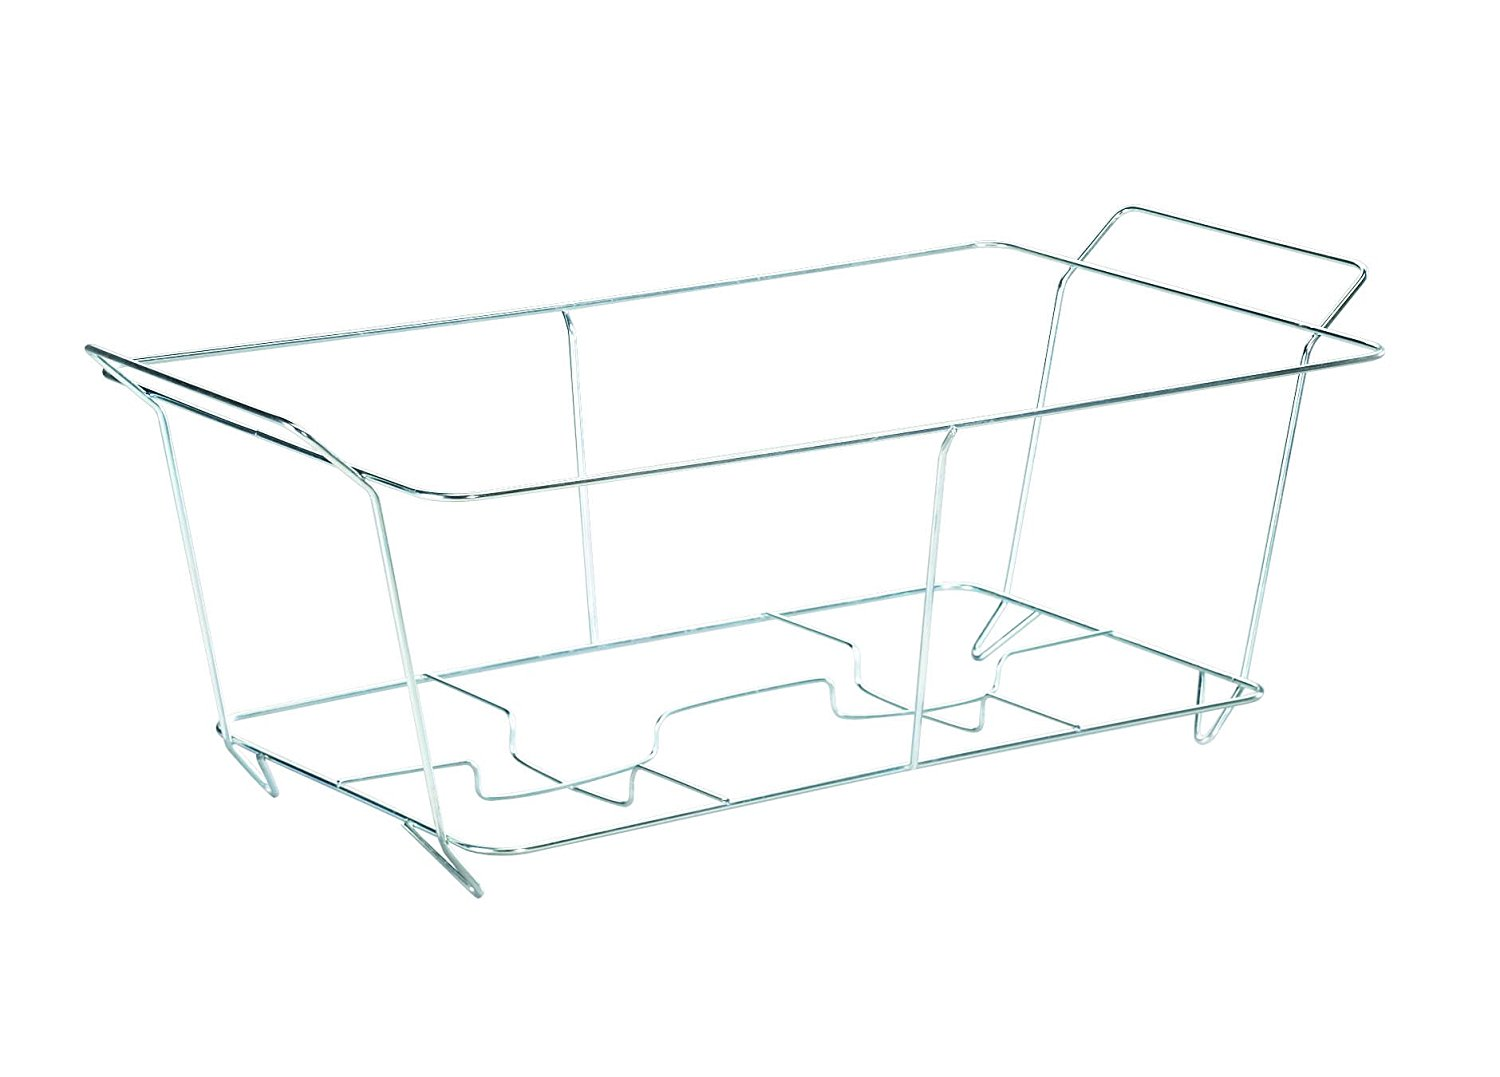 70152 Chafing Dish Wire Rack, Silver, Great for food buffet entertaining By Sterno by